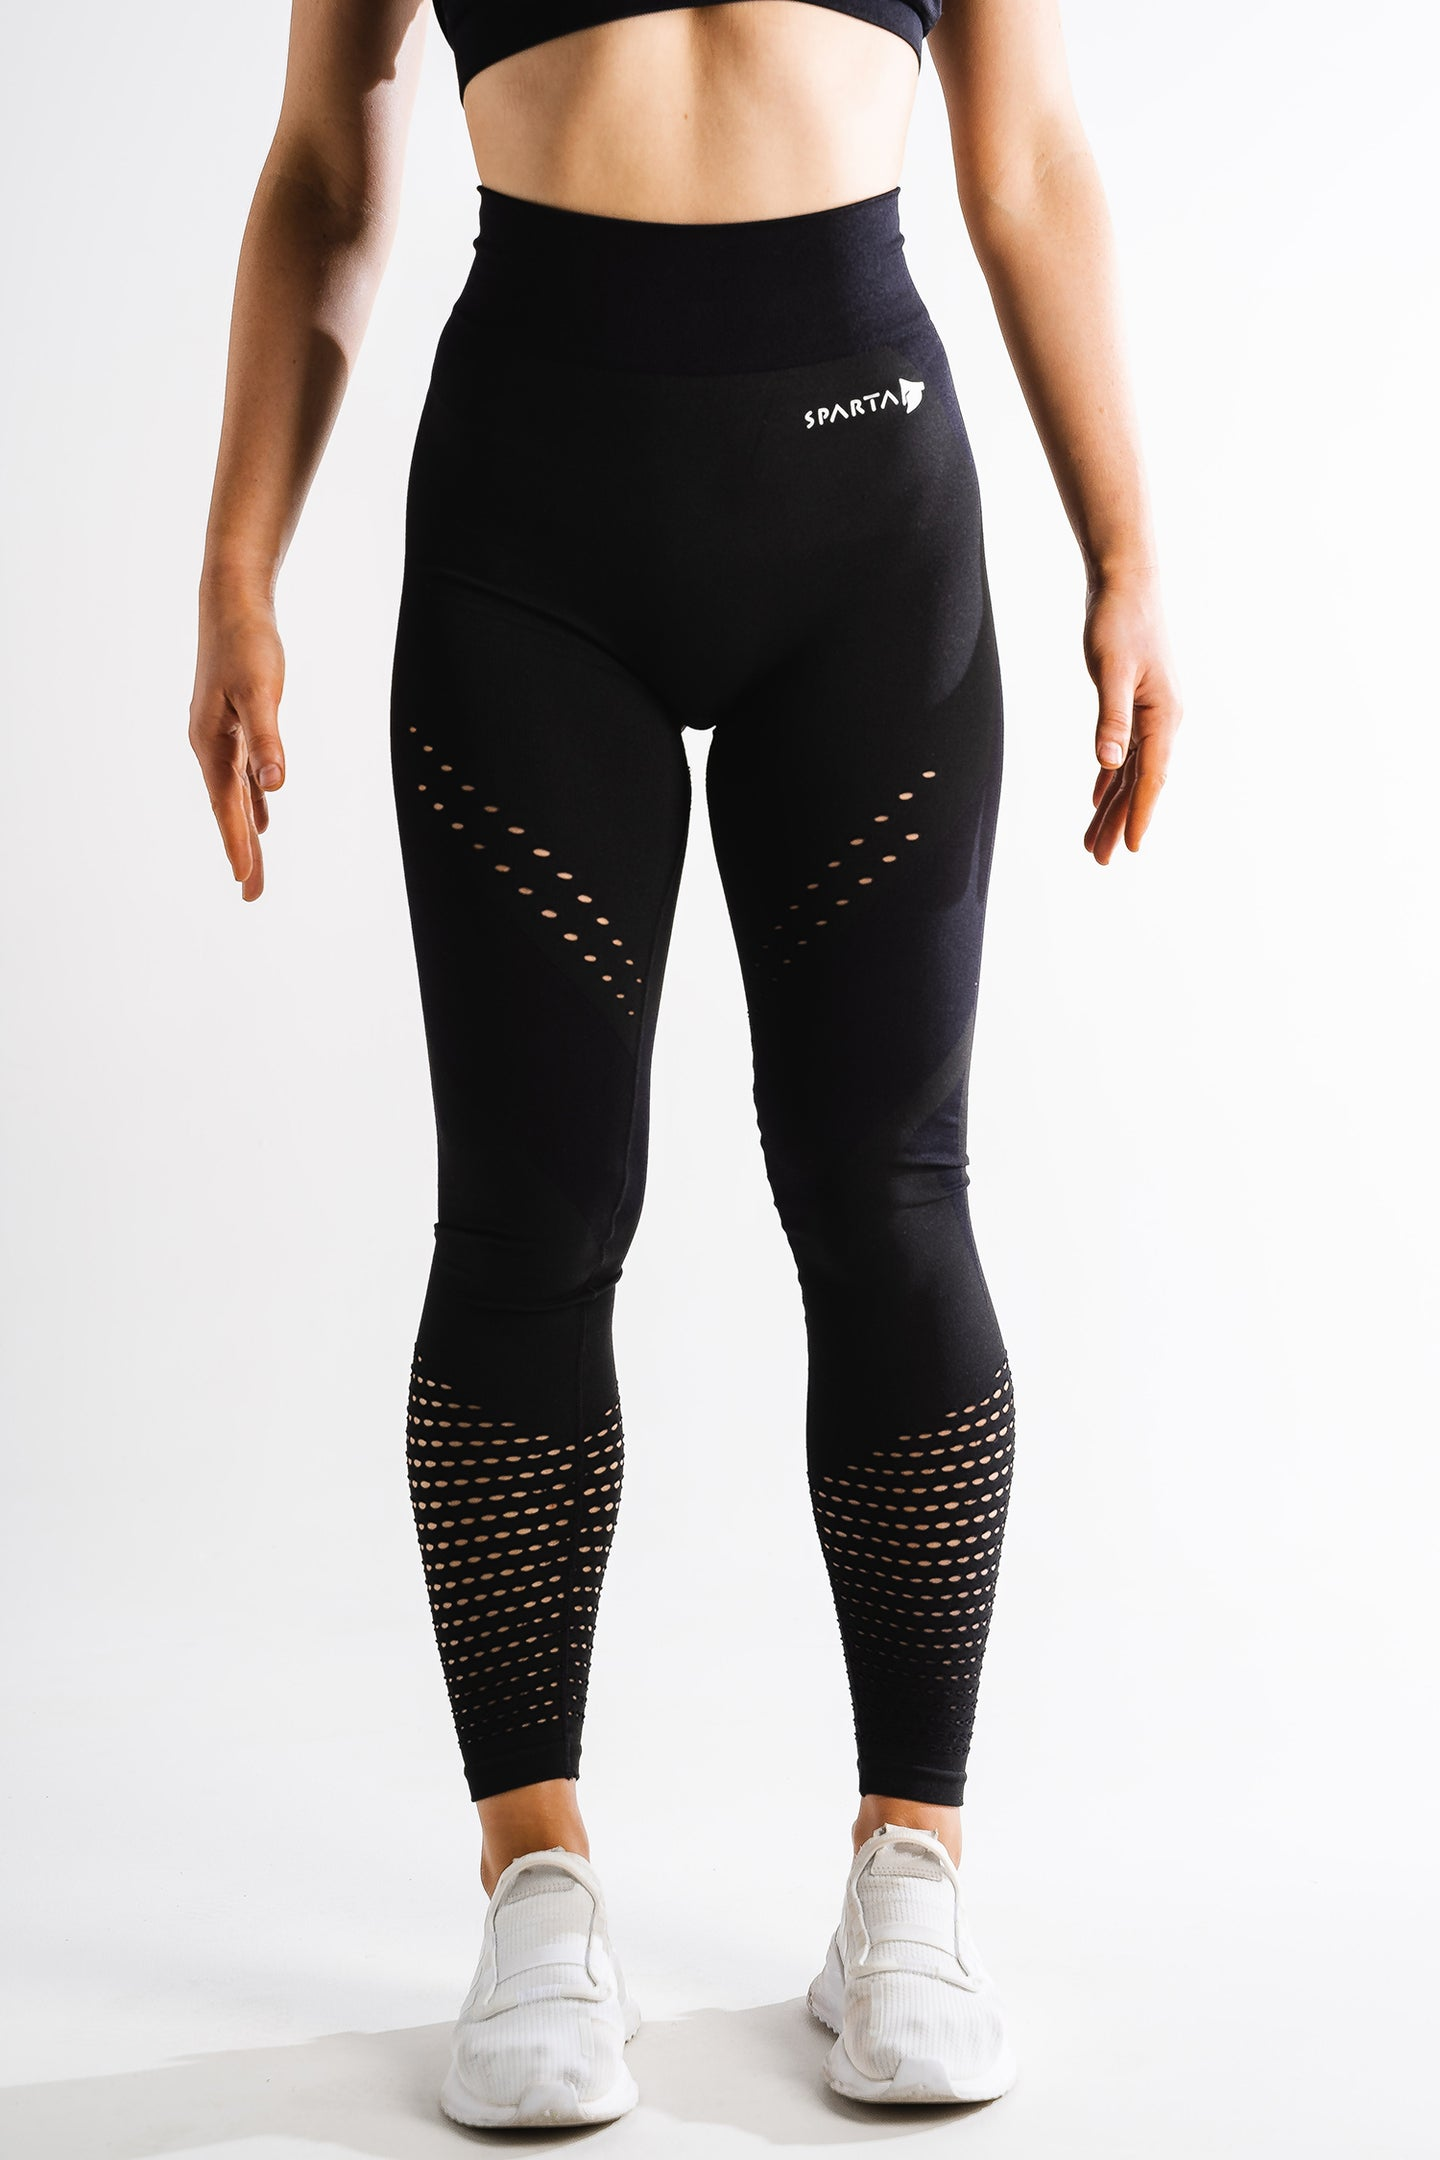 Sparta Laconic Seamless Leggings - Black - Sparta Gym Wear